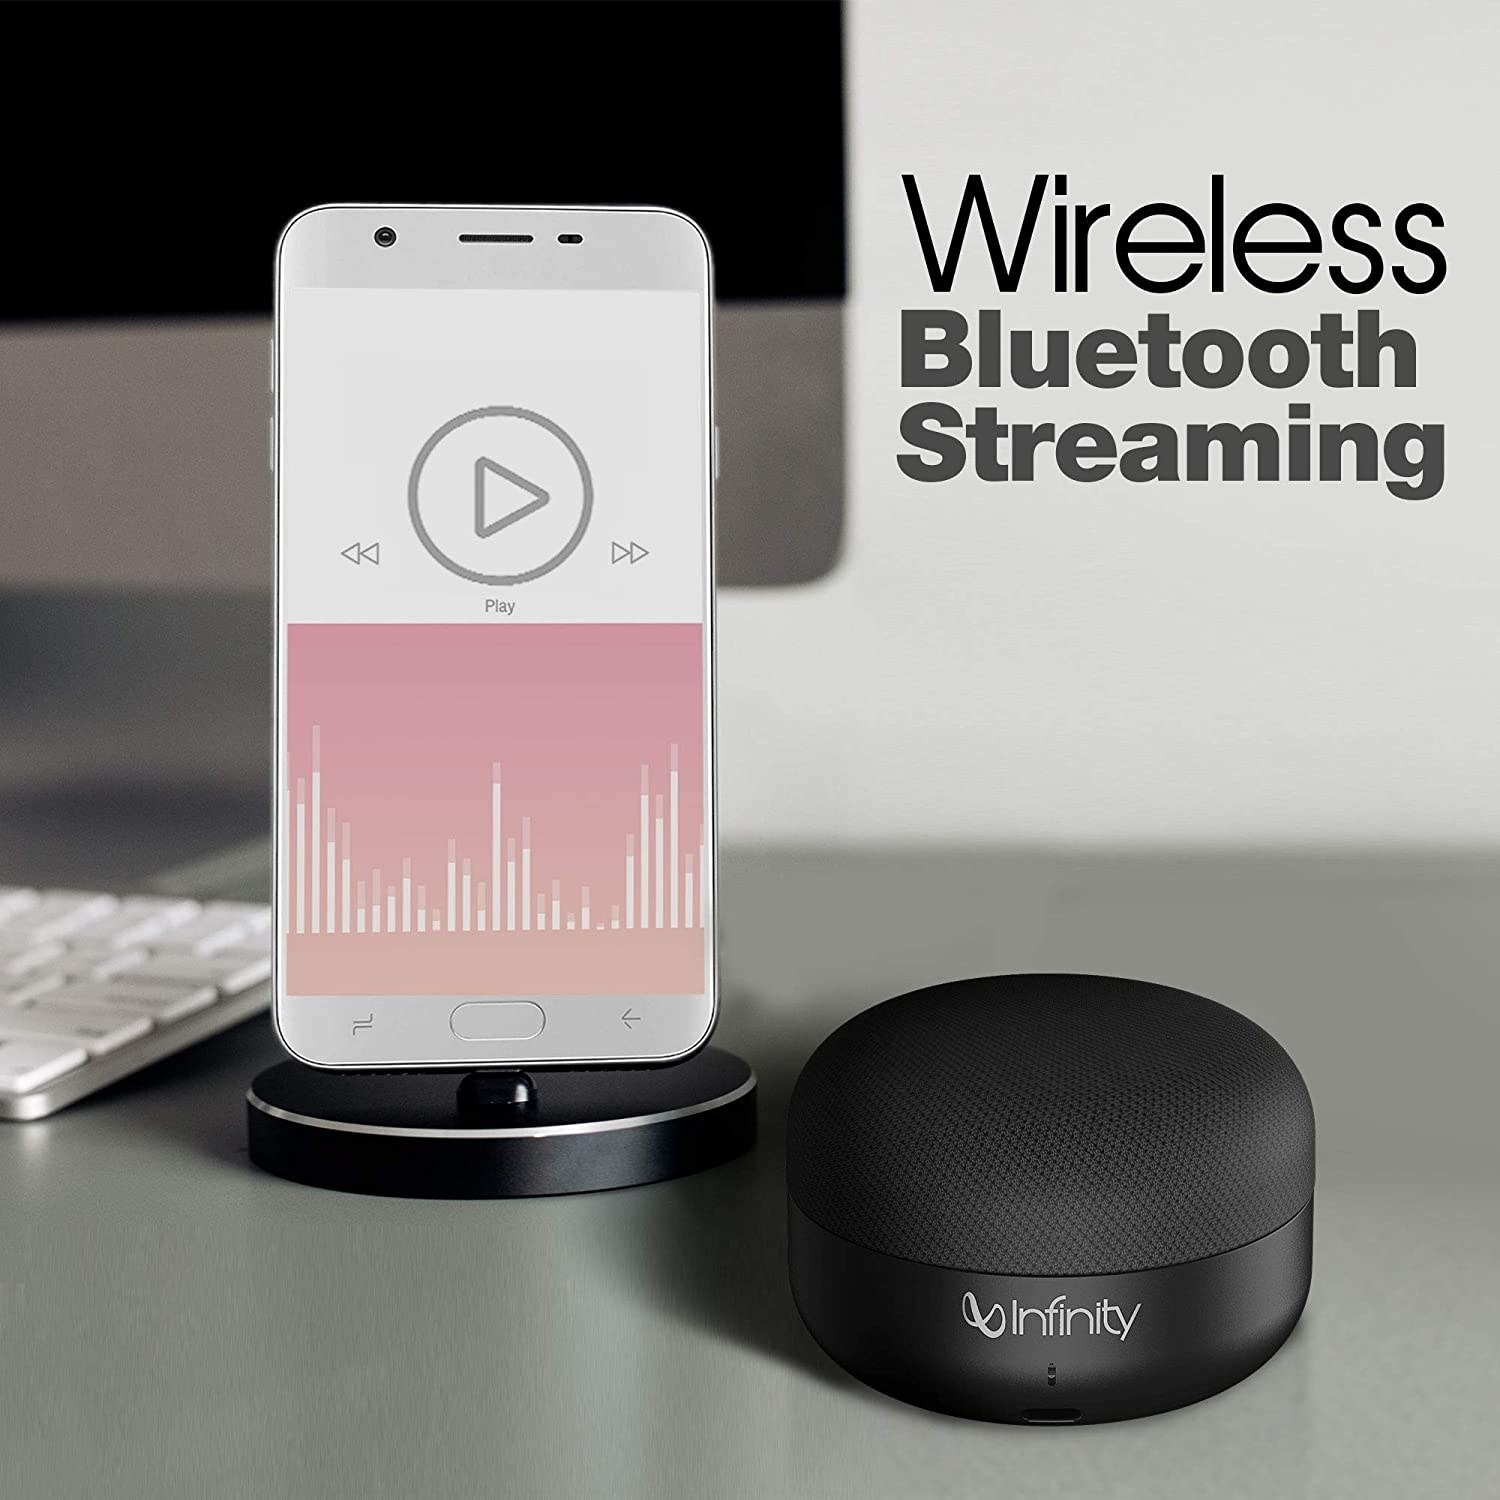 """Bluetooth speaker beside a phone, with text above it reading """"Wireless Bluetooth Streaming""""."""